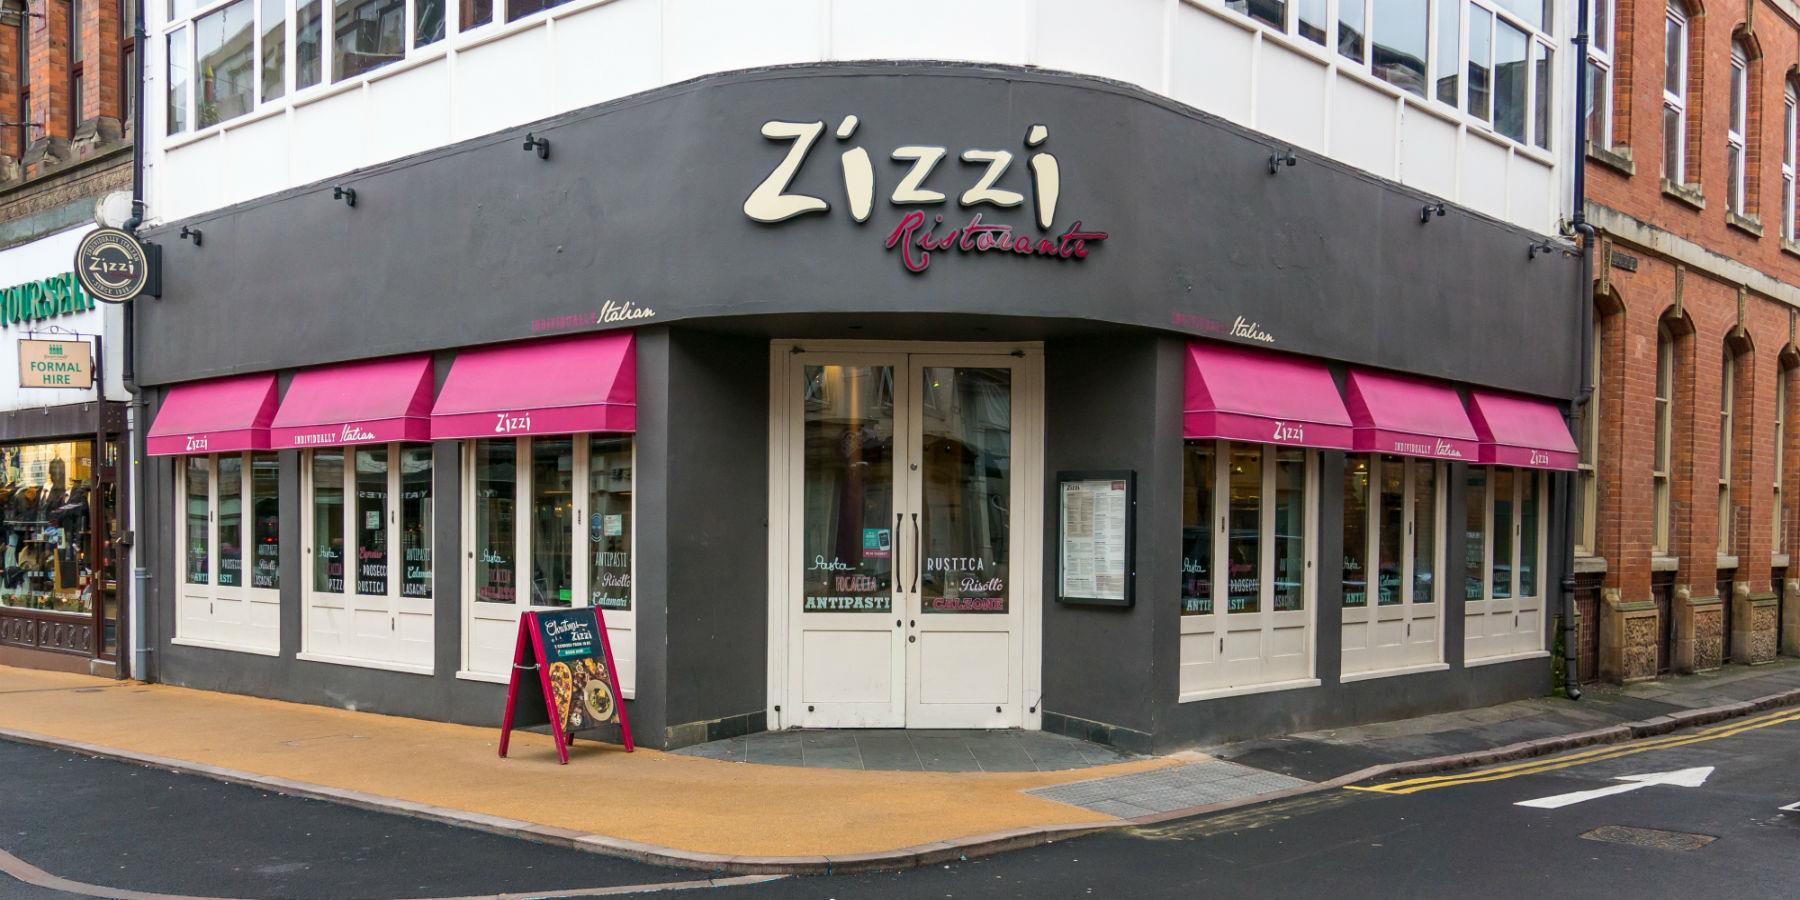 Zizzi, Restaurants - Eating and Drinking in Leicester